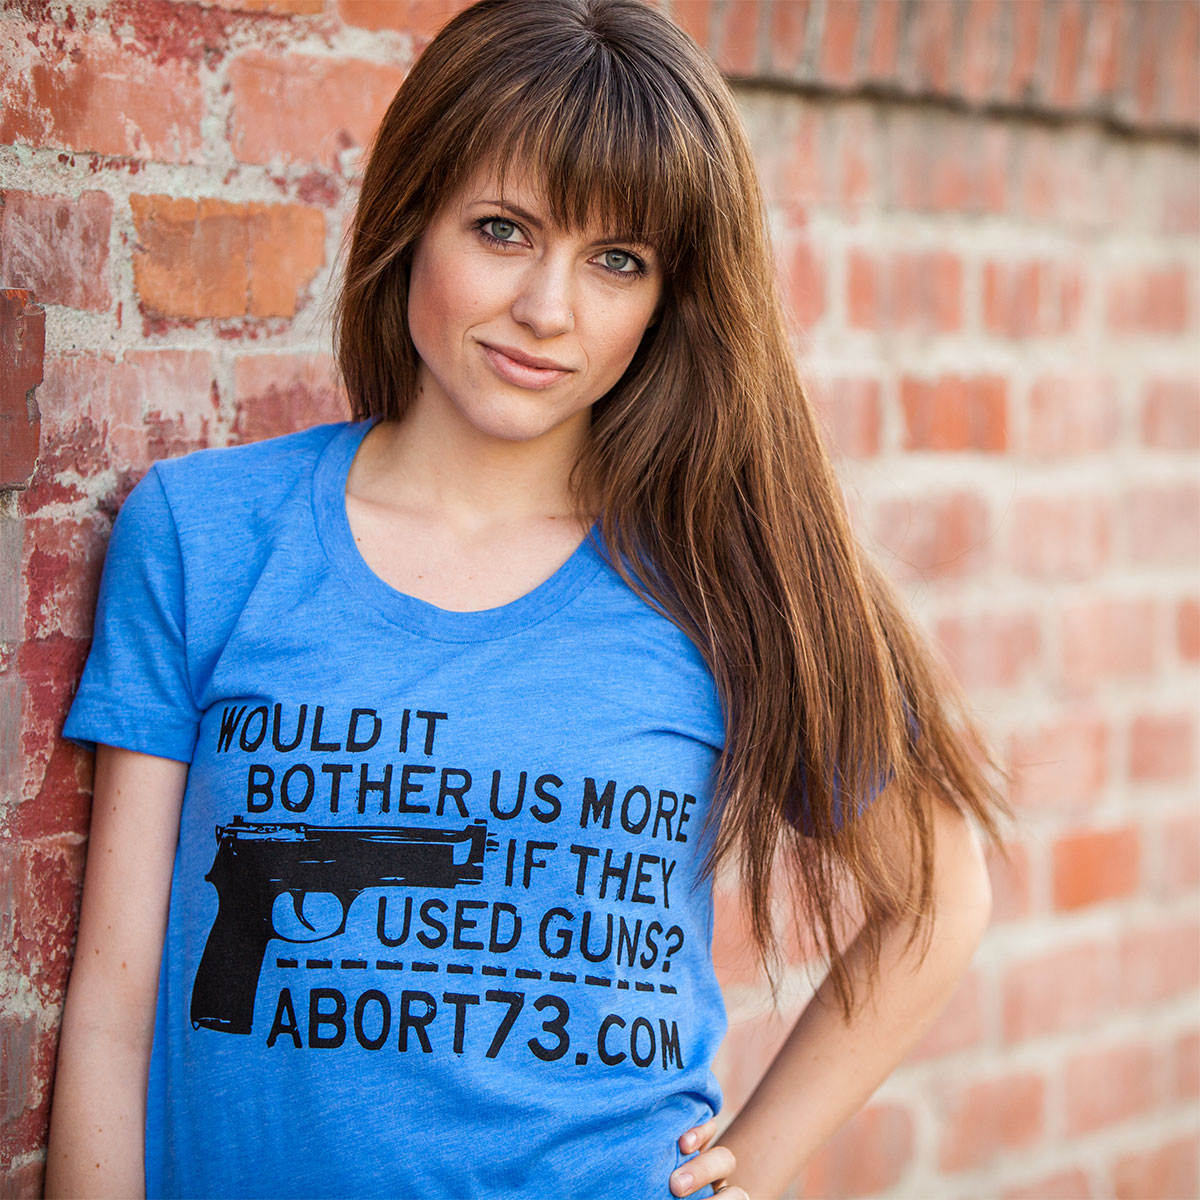 Would it Bother Us More if They Used Guns? (Abort73 Girls 50/50 T-shirt)